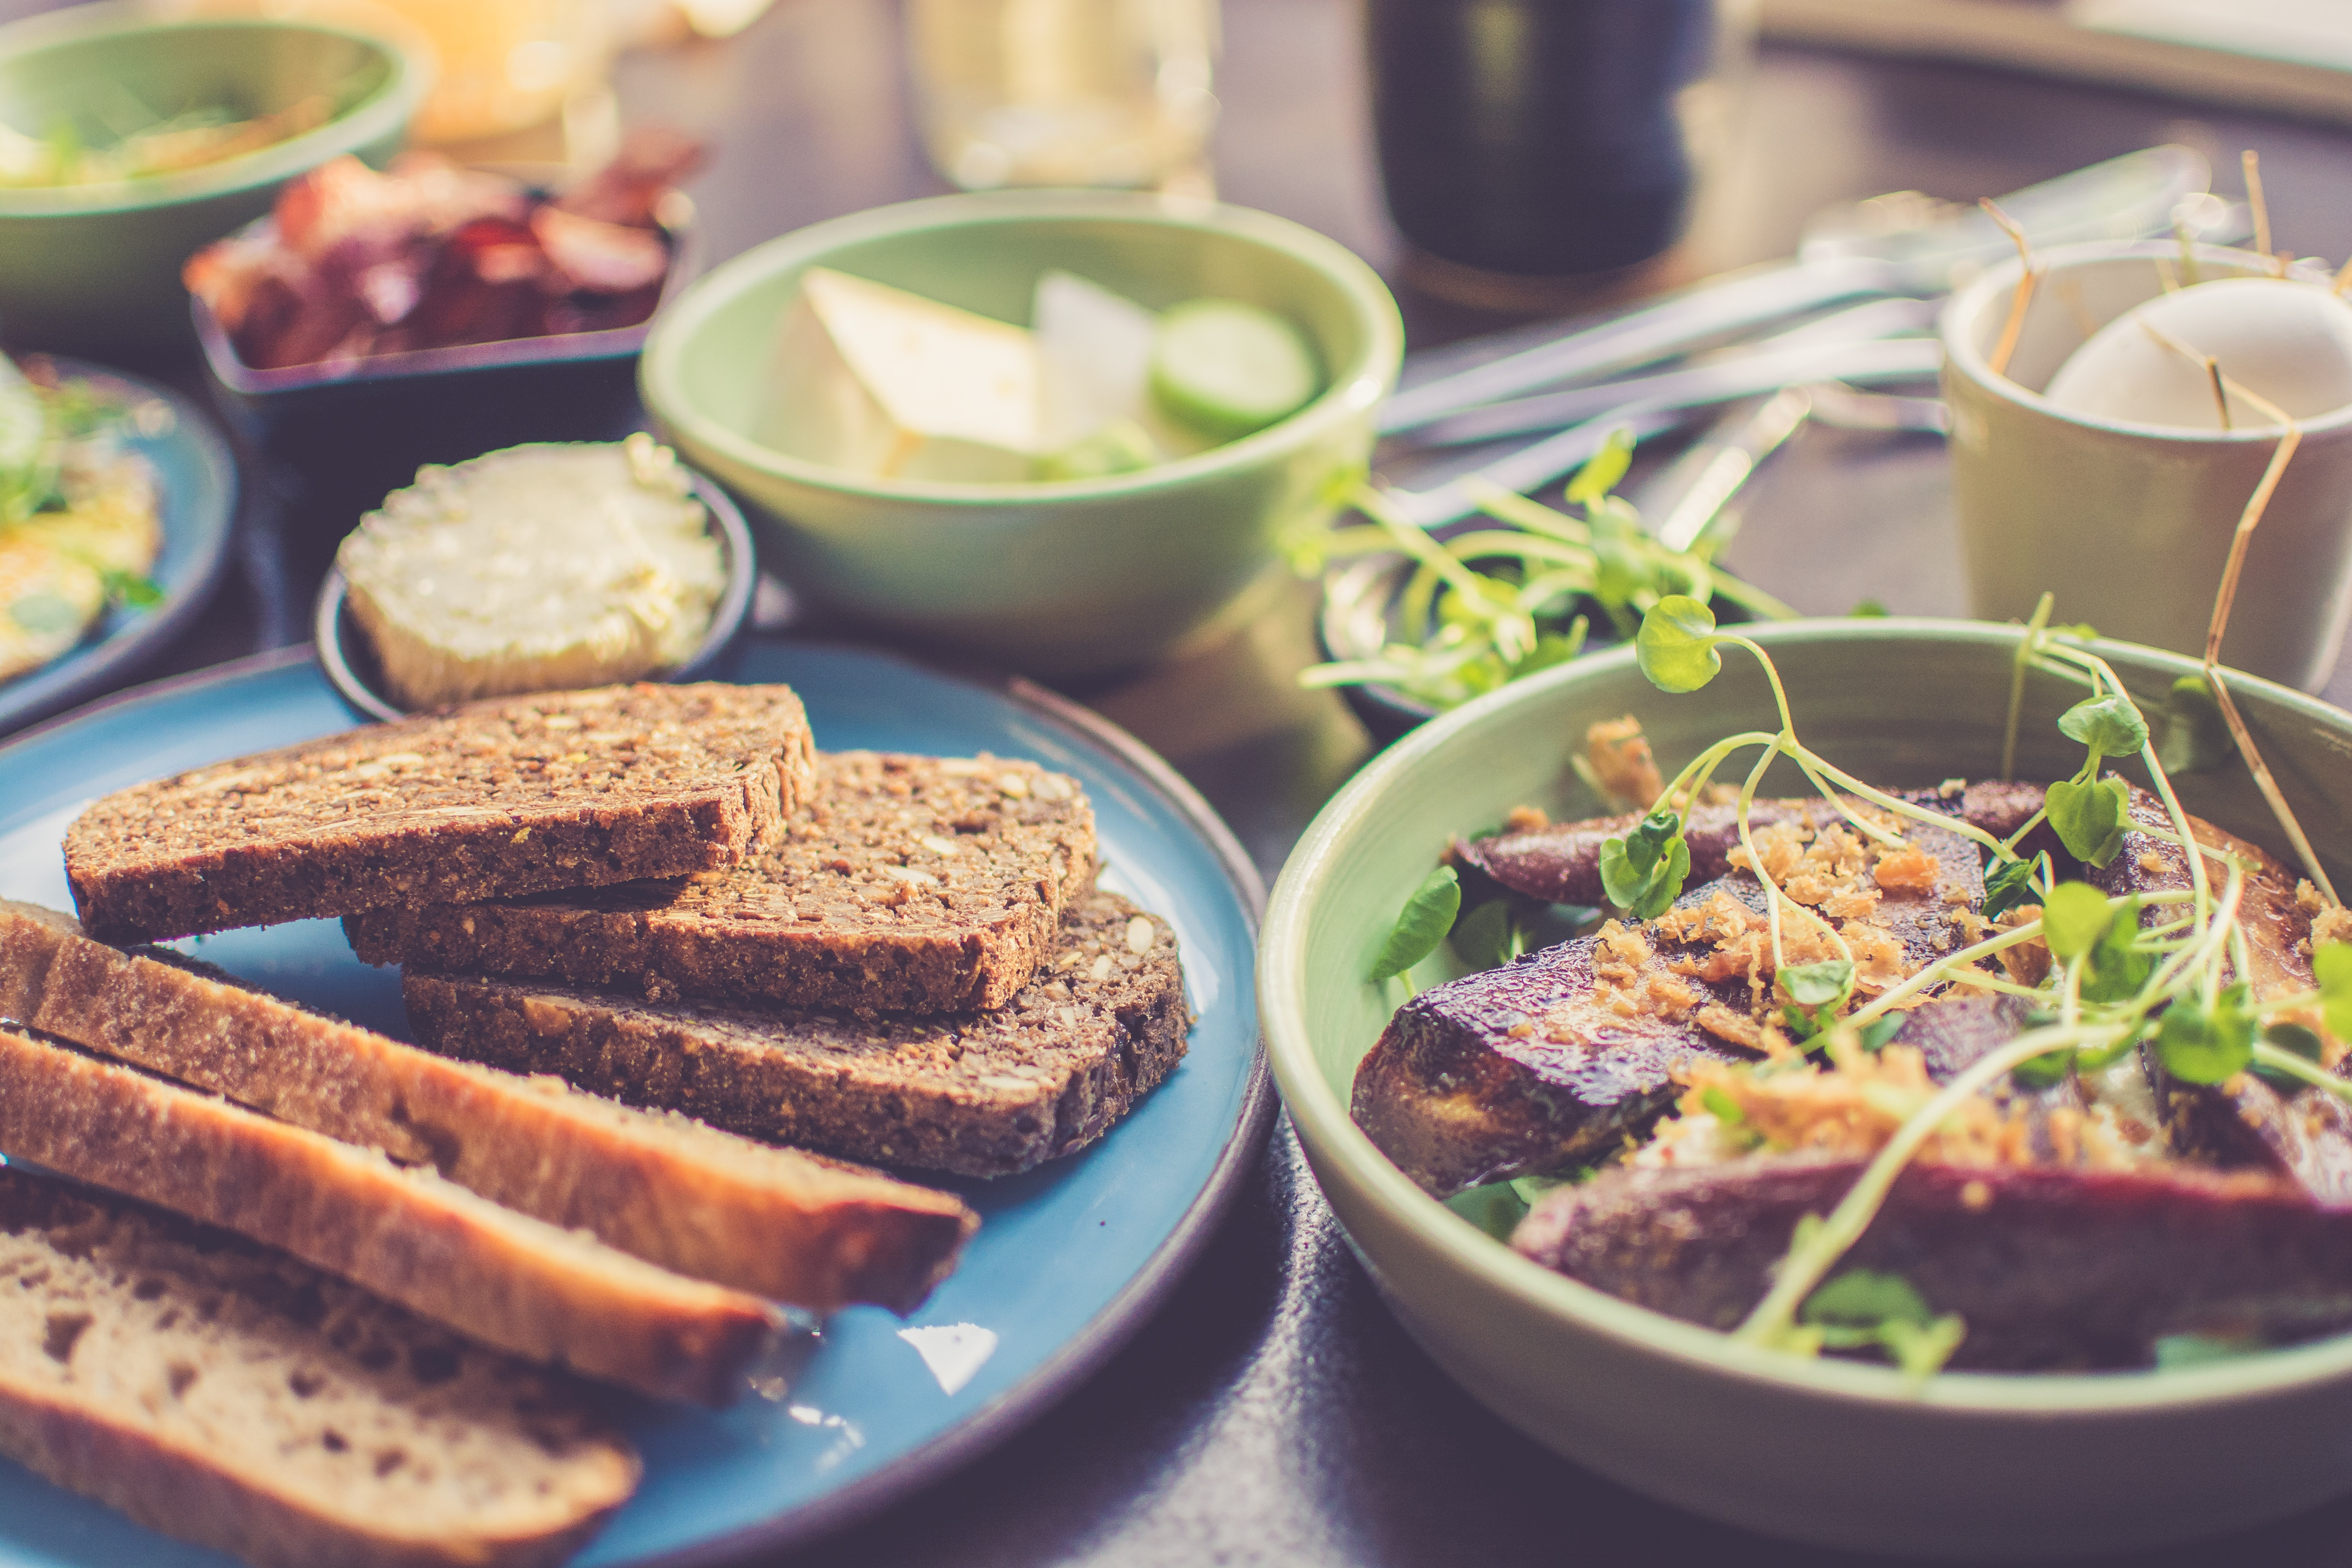 Kitchen table with slices of bread, meat with herbs, and fruit